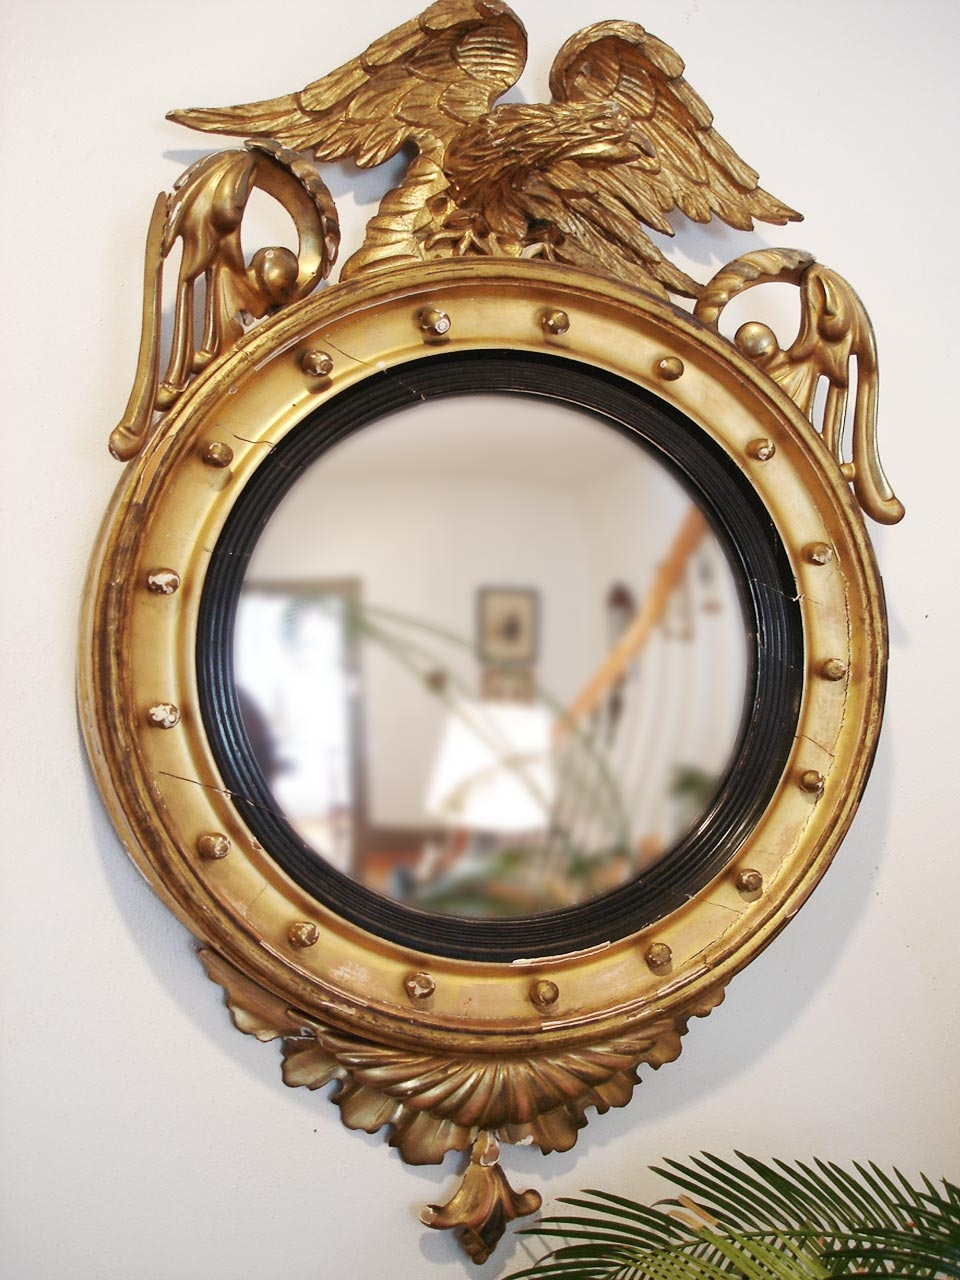 Eagle Federal Convex Mirror Spray Paint Black Or Different Color Within Convex Decorative Mirror (Image 7 of 15)